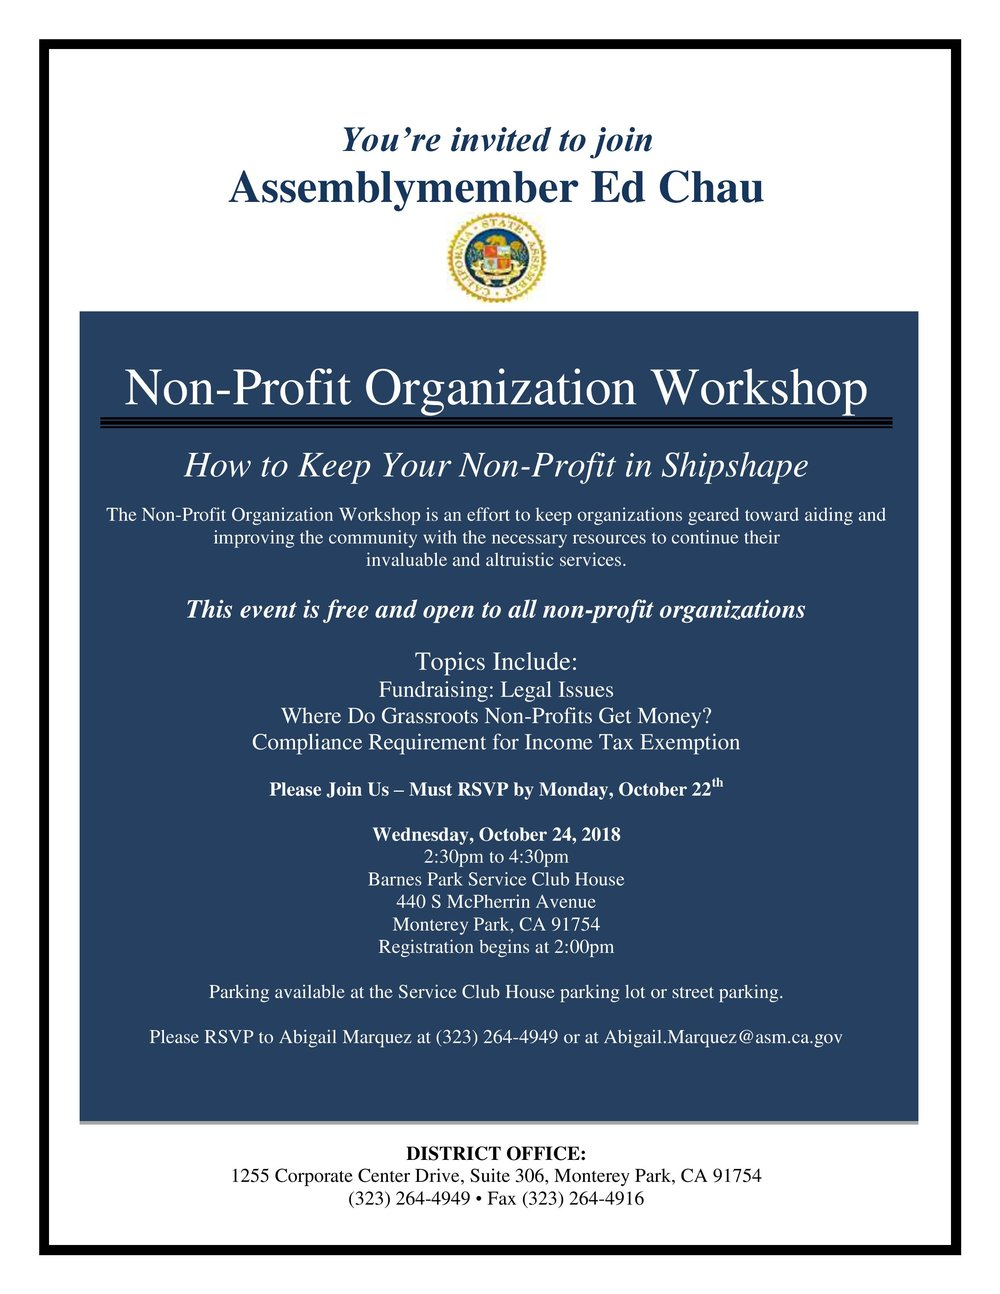 Assemblymember ed chau: non-profit organization workshop - October 24th, 2018